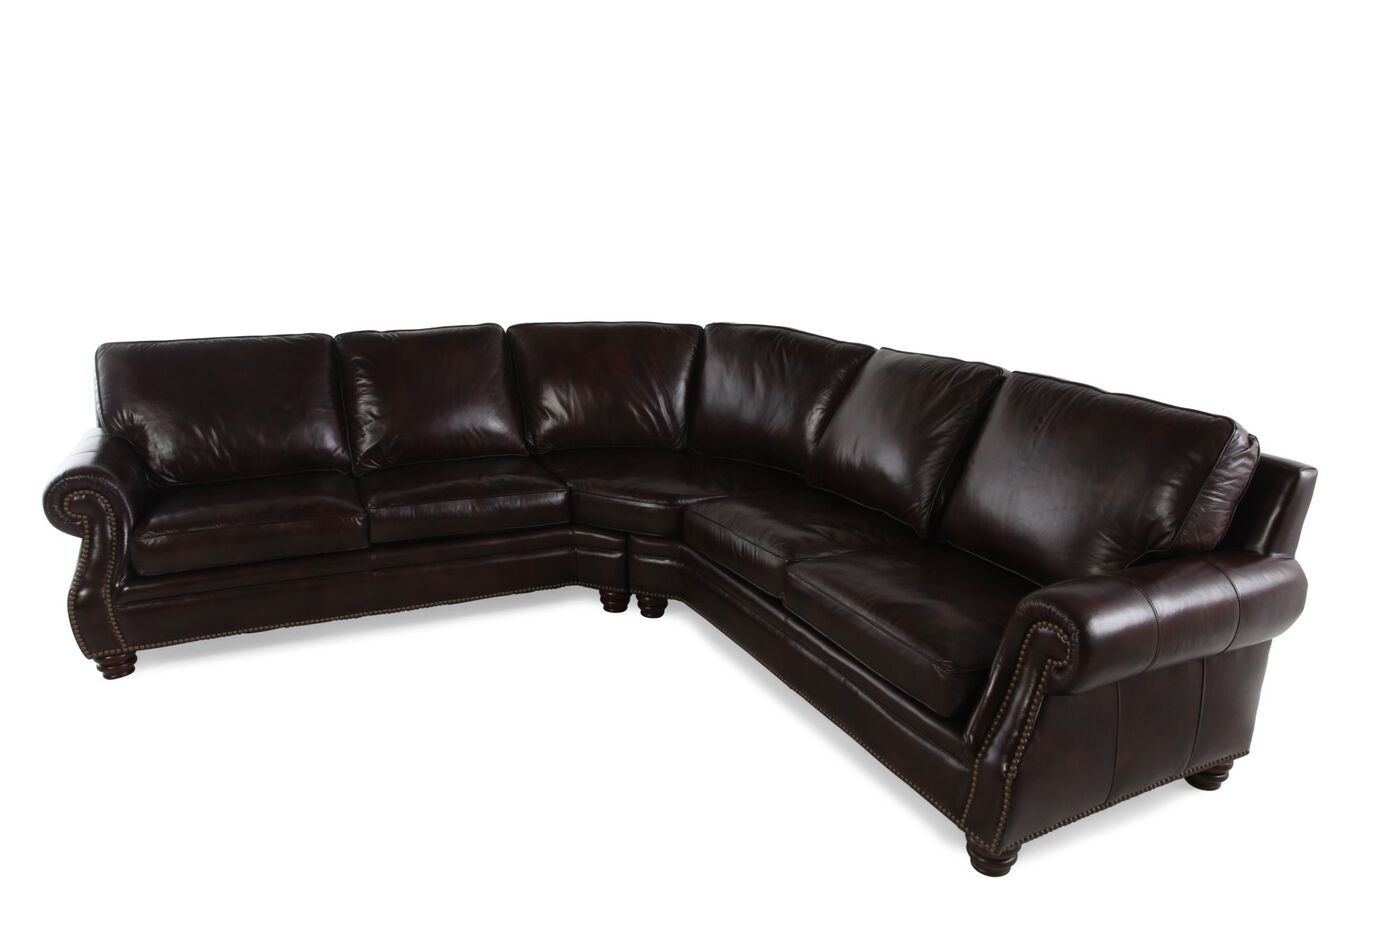 Two piece leather 232quot nailhead accented sectional in for 8 piece leather sectional sofa